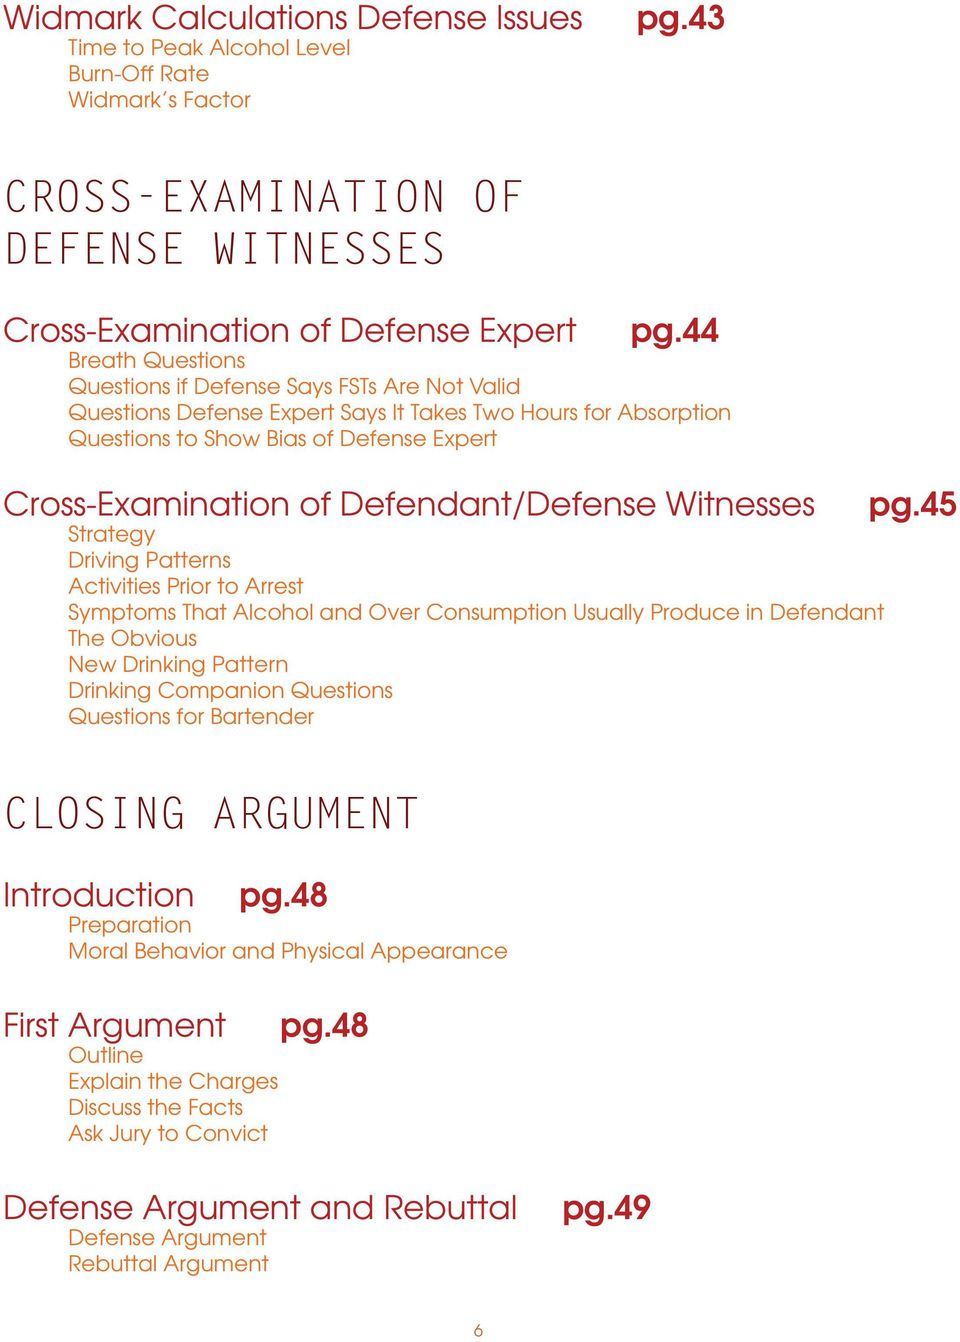 Defendant/Defense Witnesses Strategy Driving Patterns Activities Prior to Arrest Symptoms That Alcohol and Over Consumption Usually Produce in Defendant The Obvious New Drinking Pattern Drinking